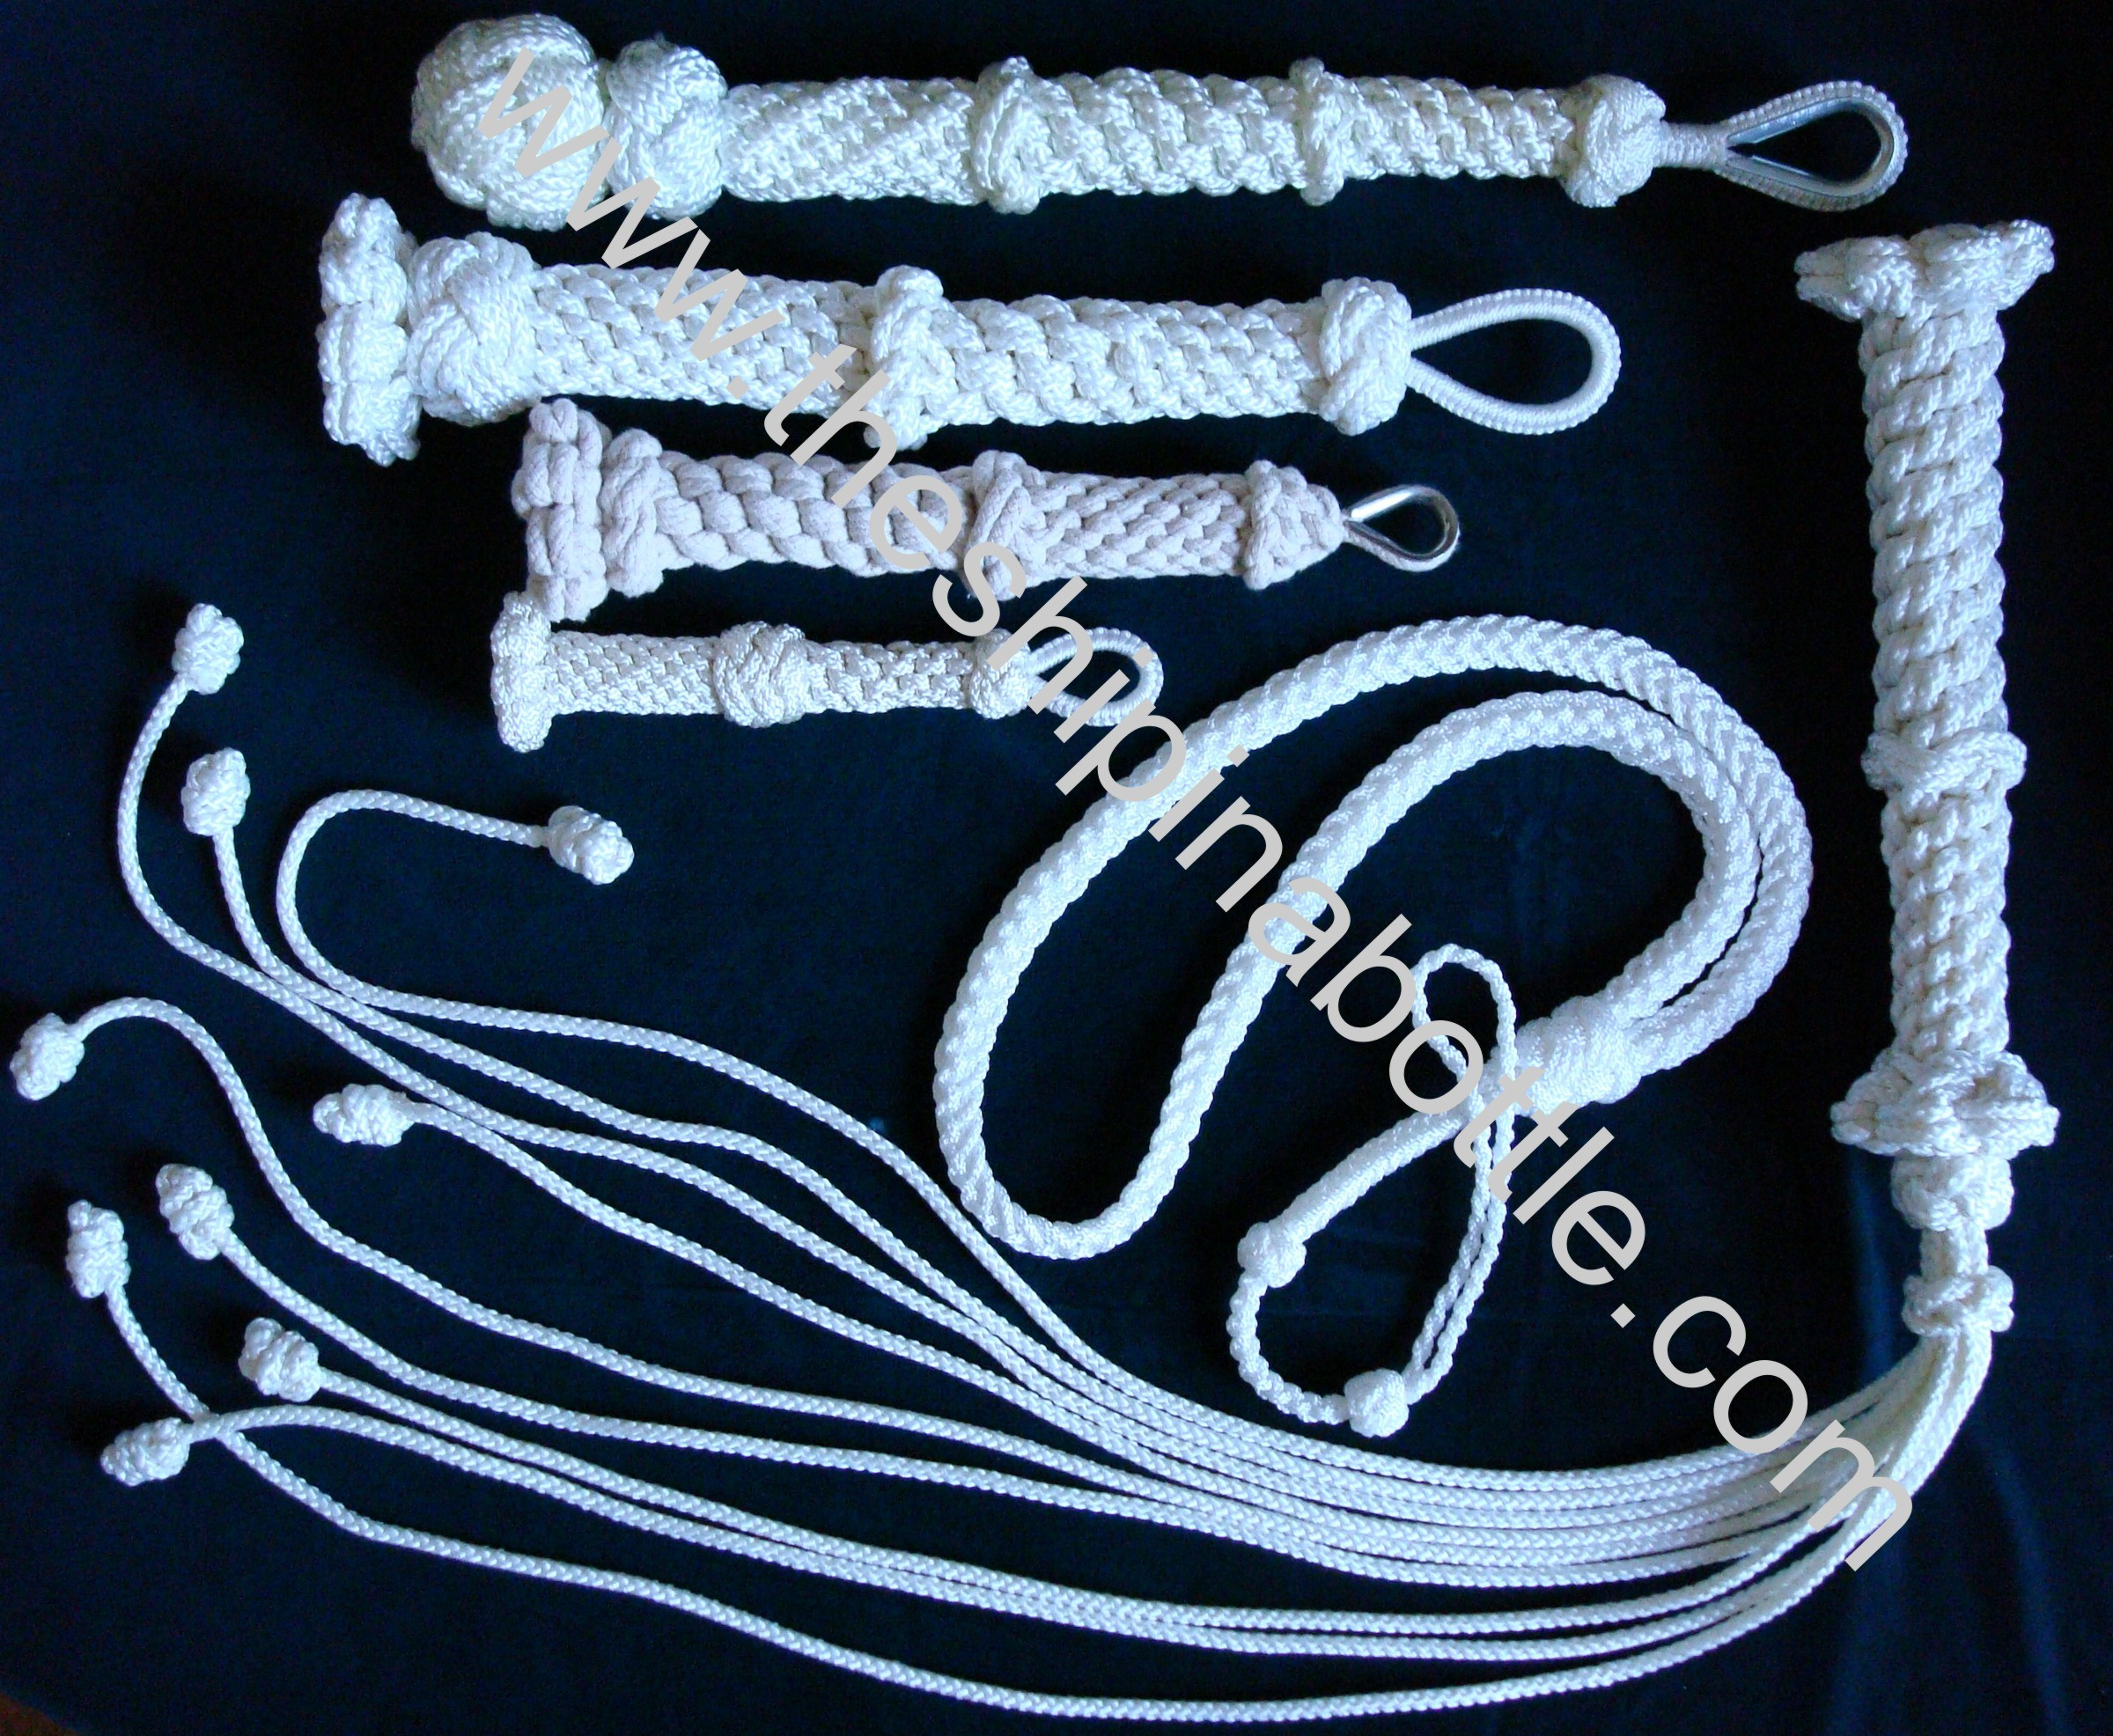 More Bell Rope Samples